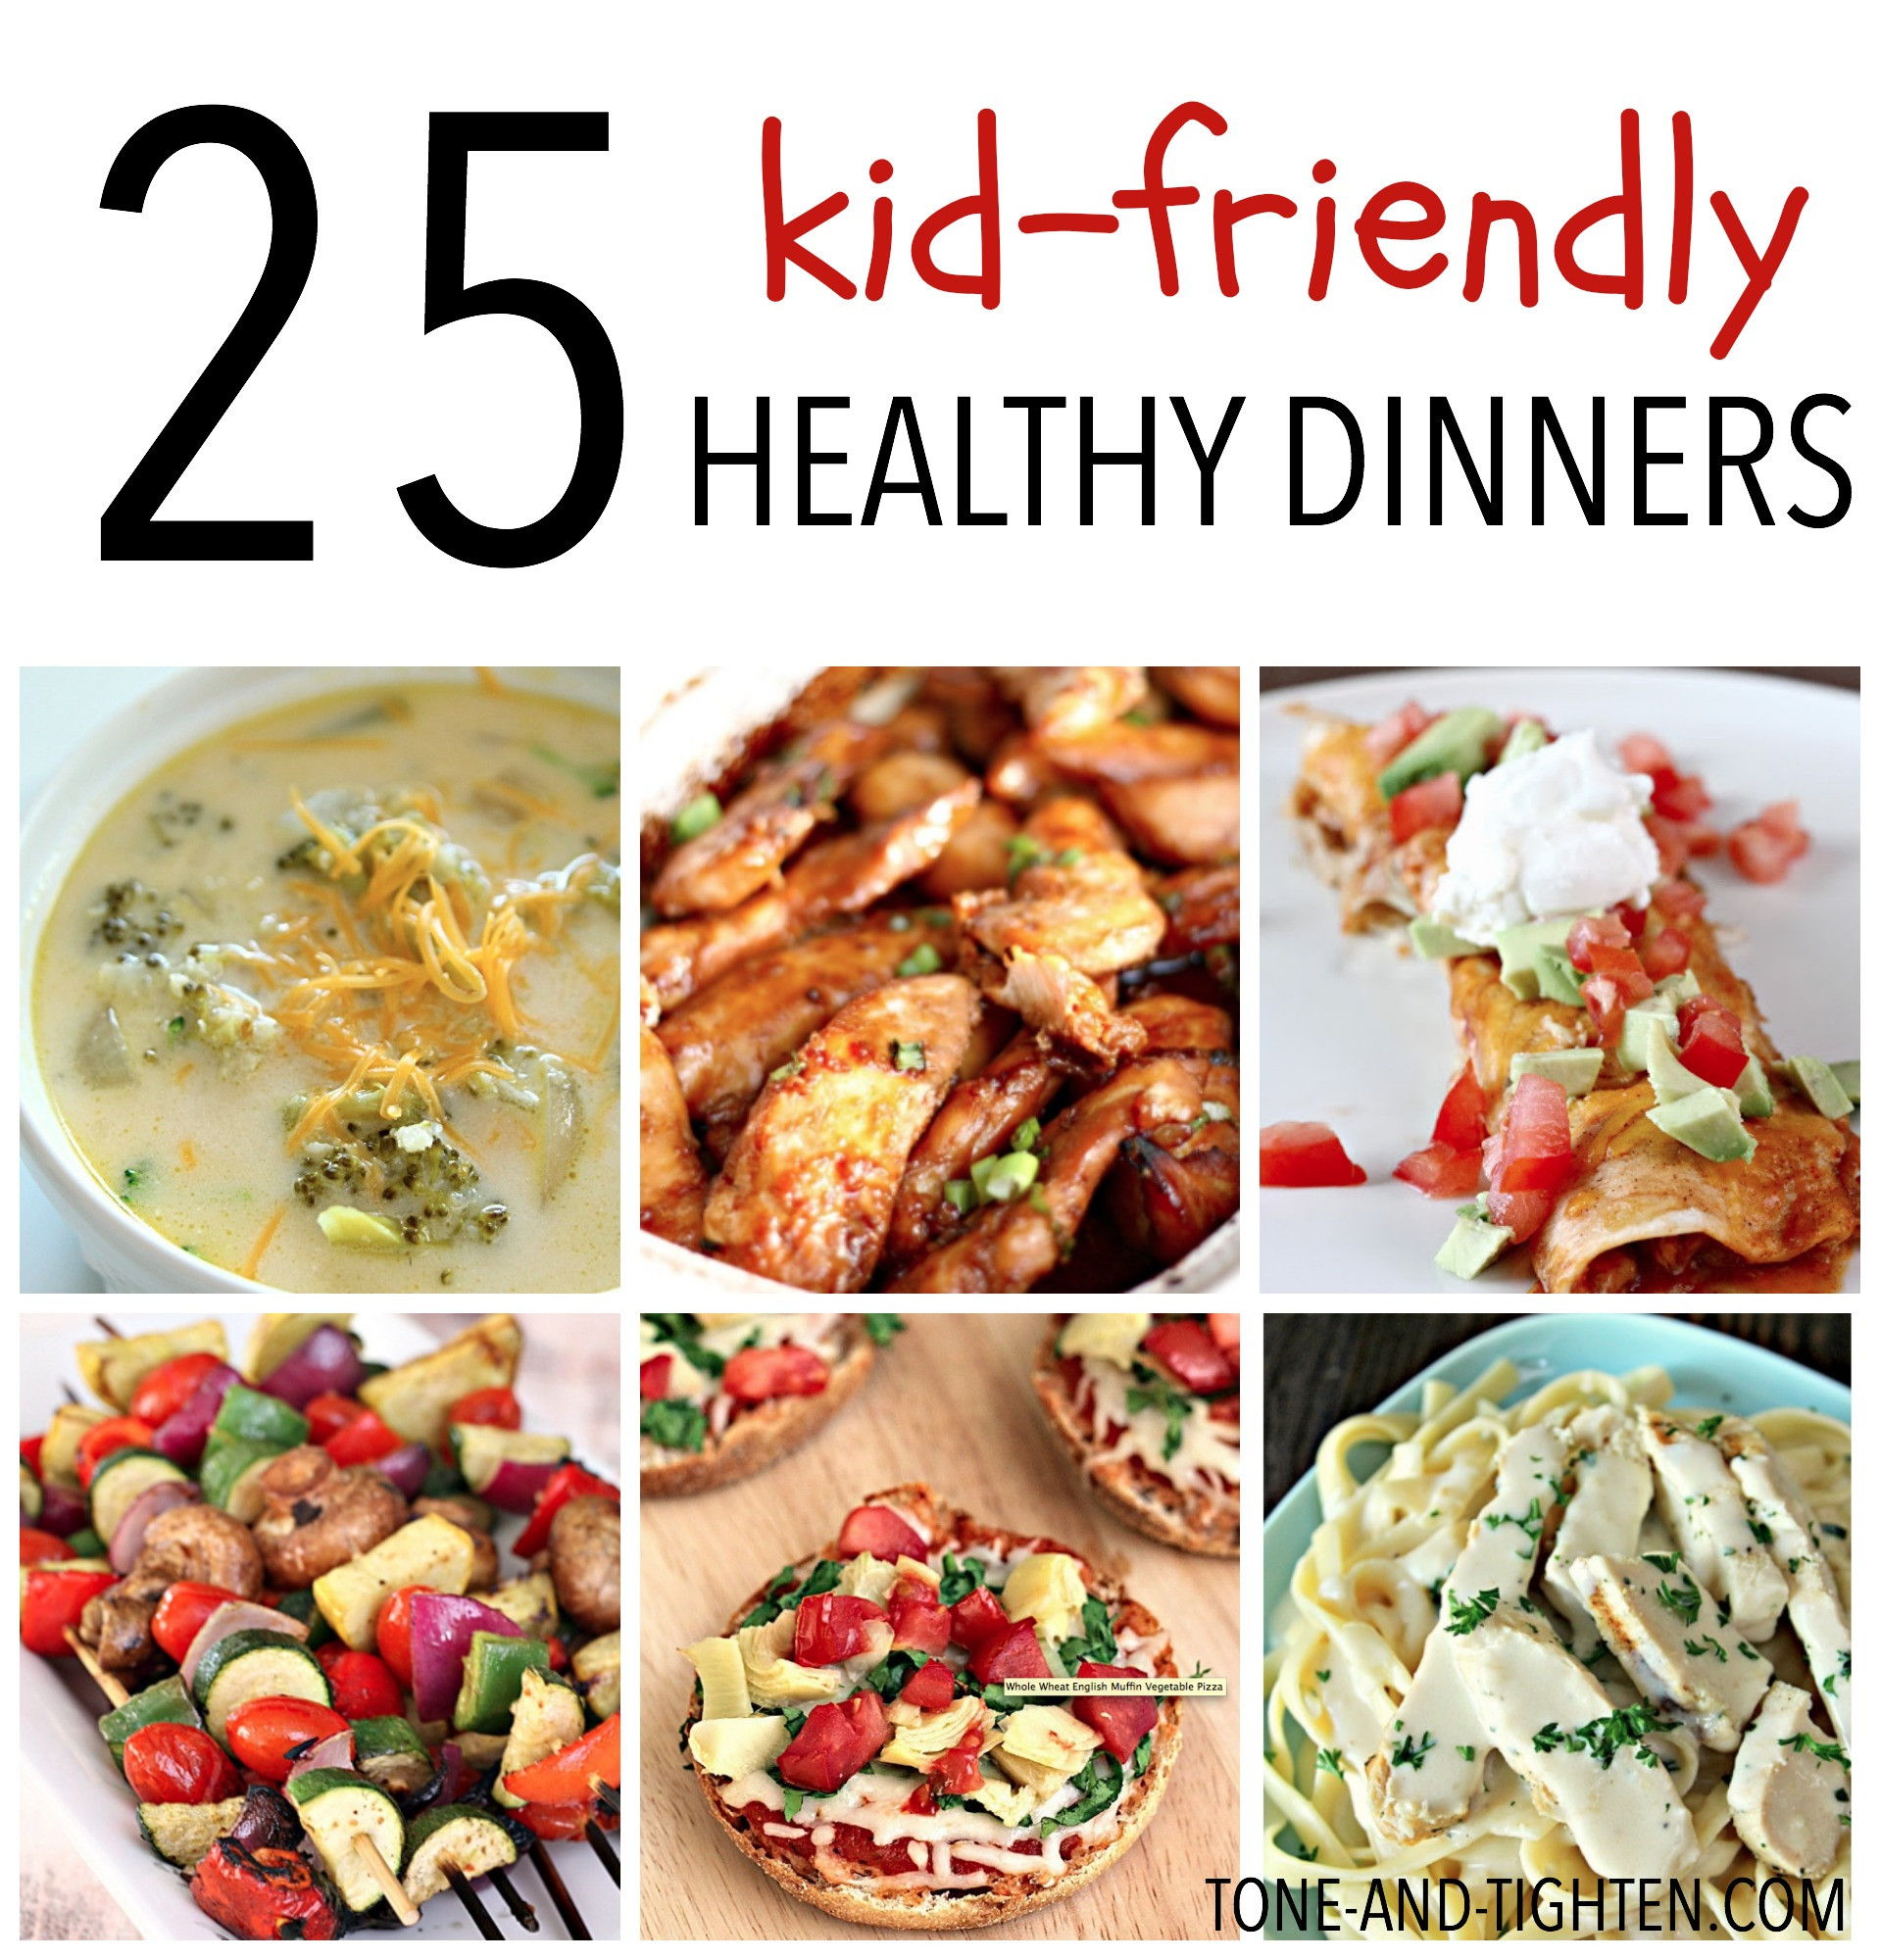 Quick Healthy Kid Friendly Dinners  25 Kid Friendly Healthy Dinners